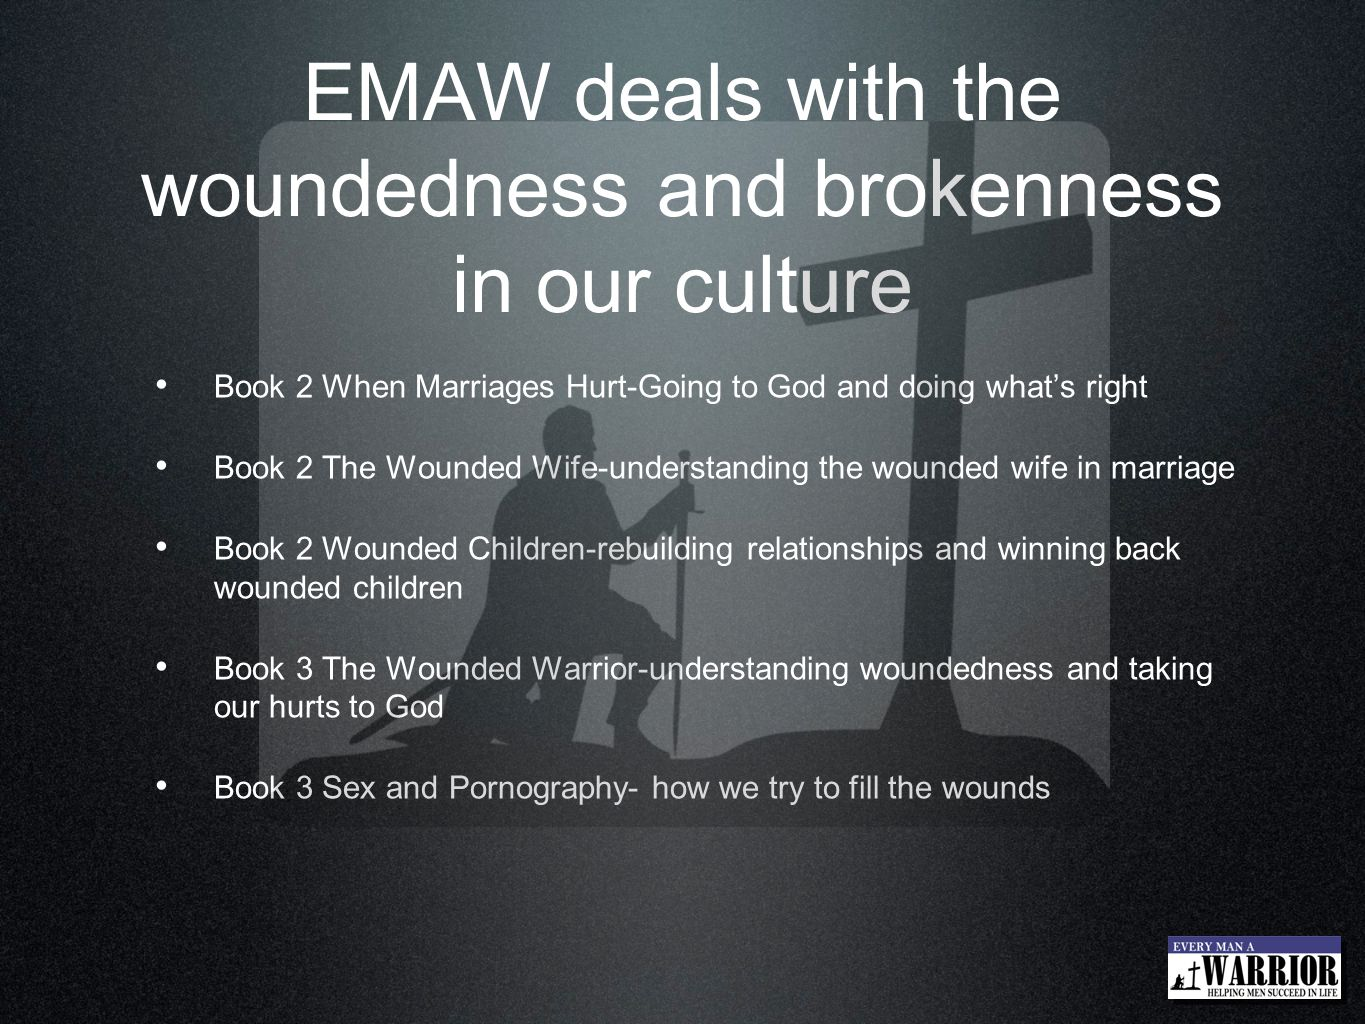 EMAW deals with the woundedness and brokenness in our culture